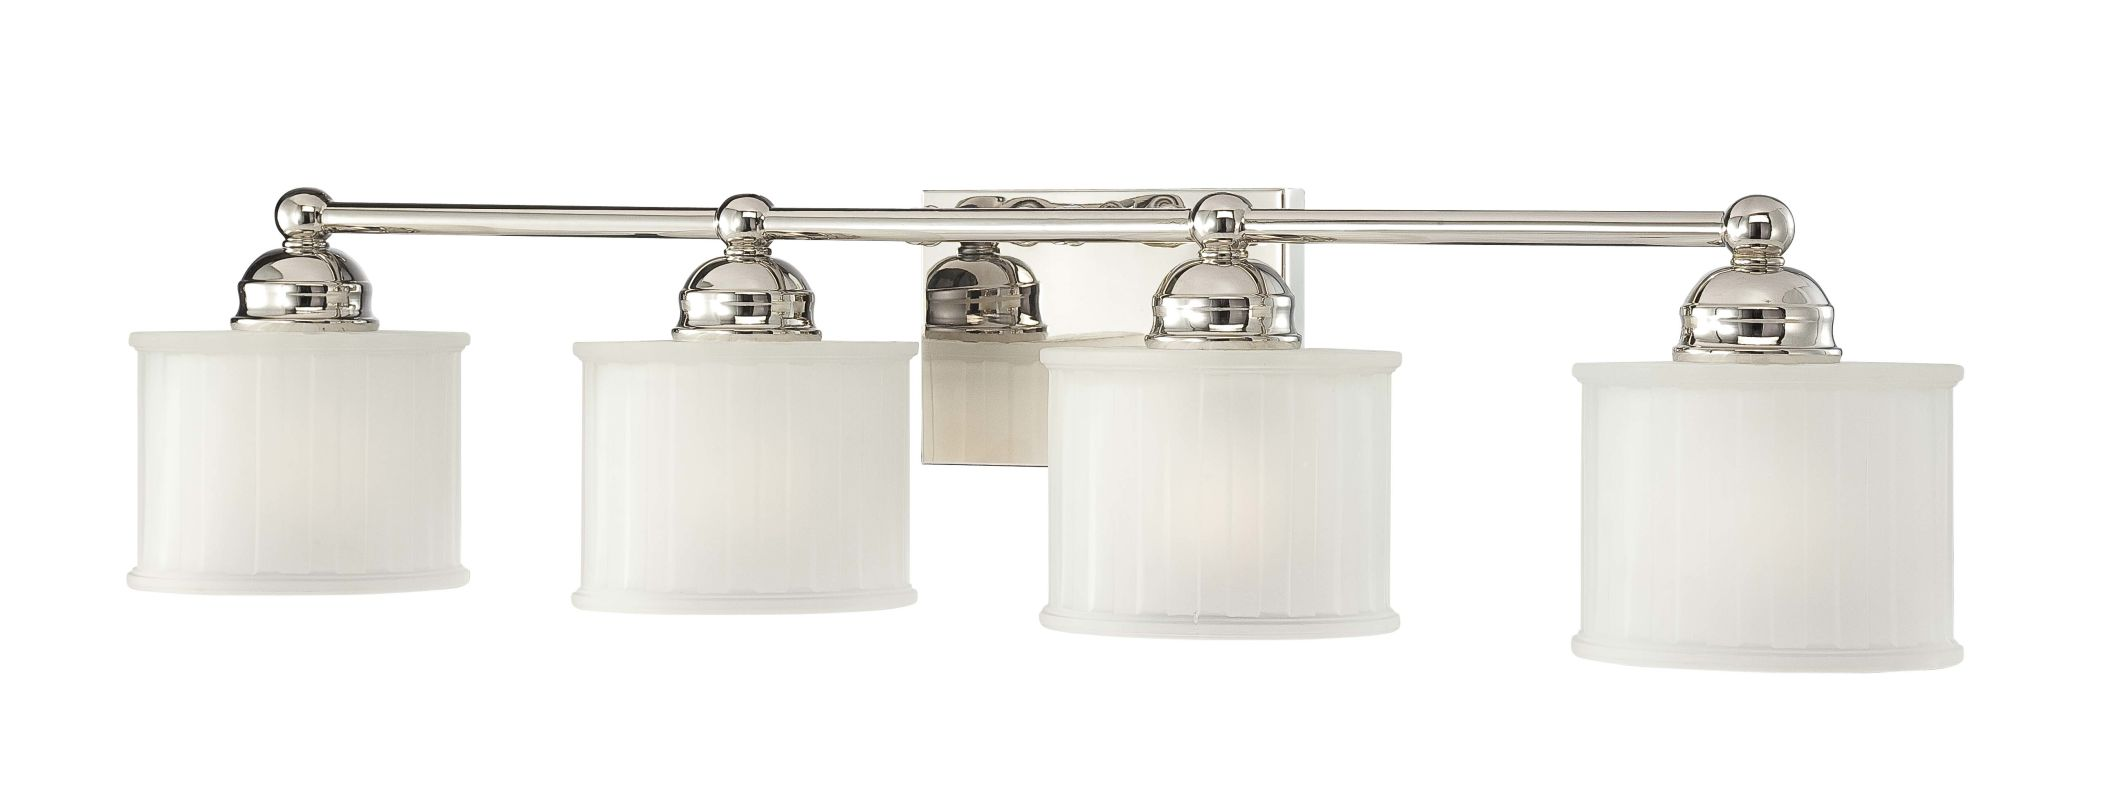 Minka Lavery 6734-1 4 Light Bathroom Vanity Light from the 1730 Series